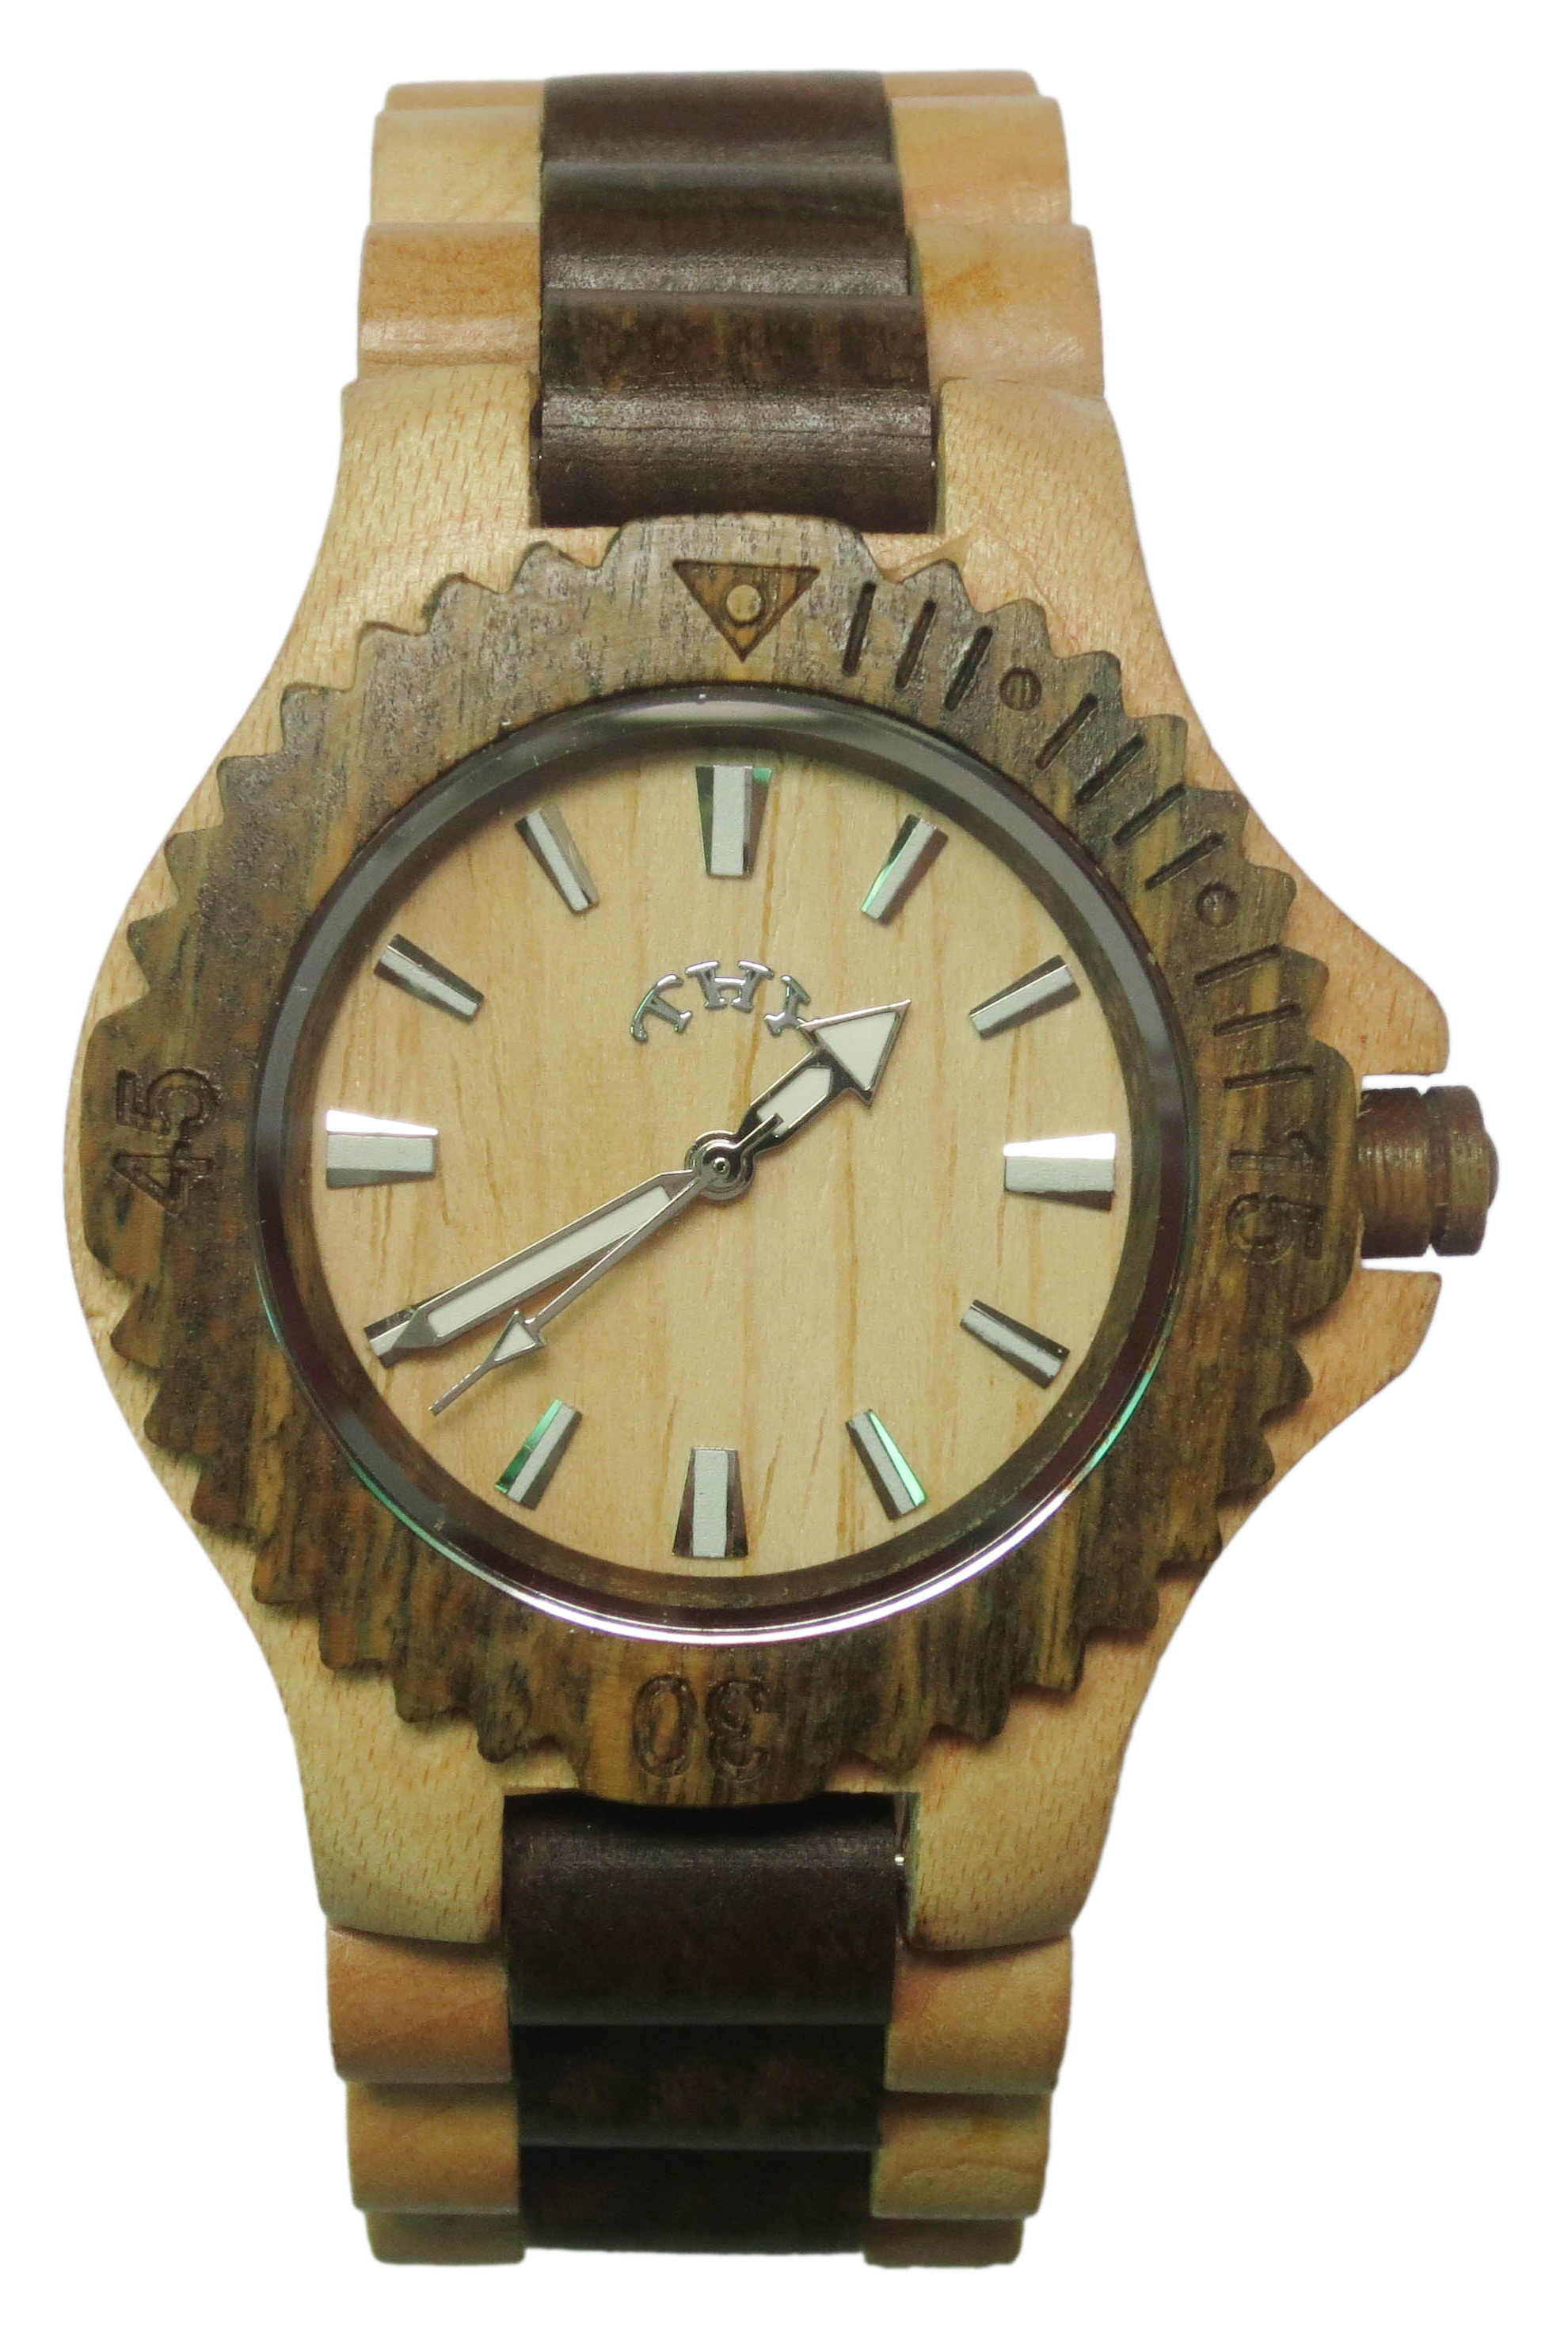 Mens Yellow and Brown 2-tone Round White Dial Wooden Watches with 40 Mm Size W00016